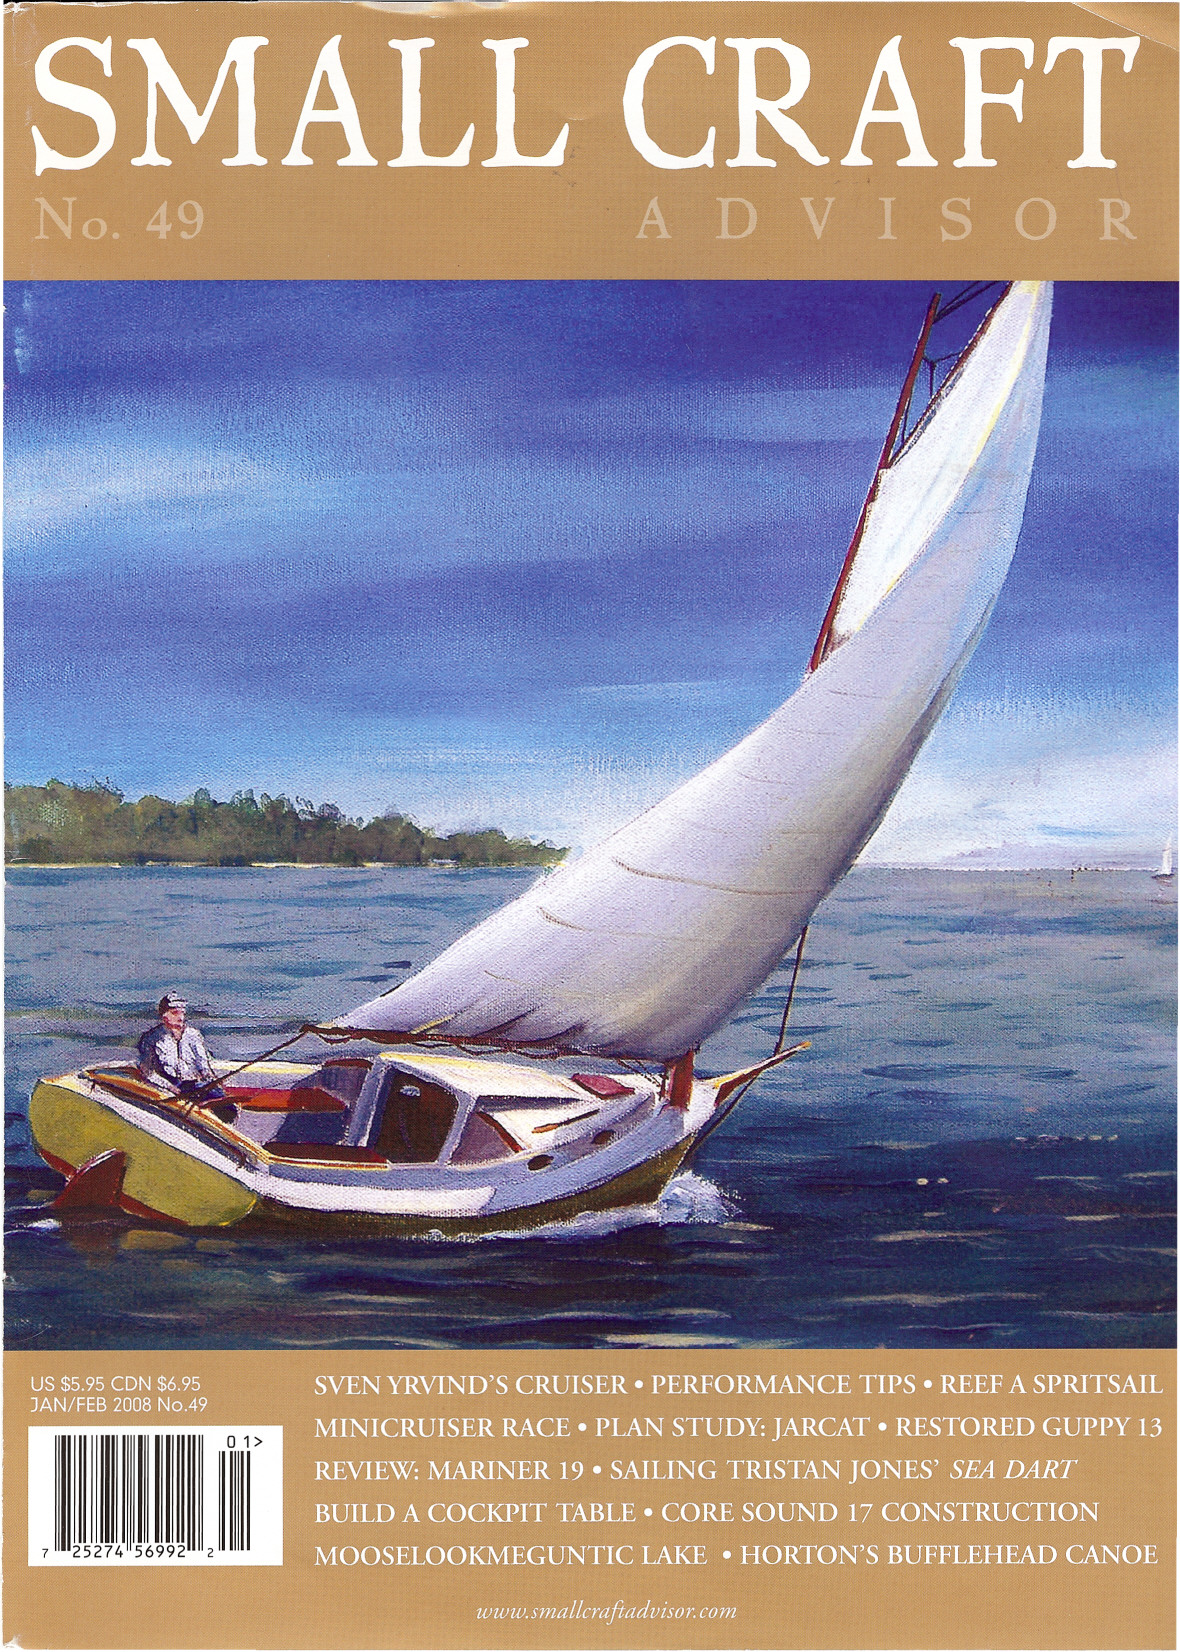 Small Craft Advisor_January_February_2008_No_49_Page_1.jpg